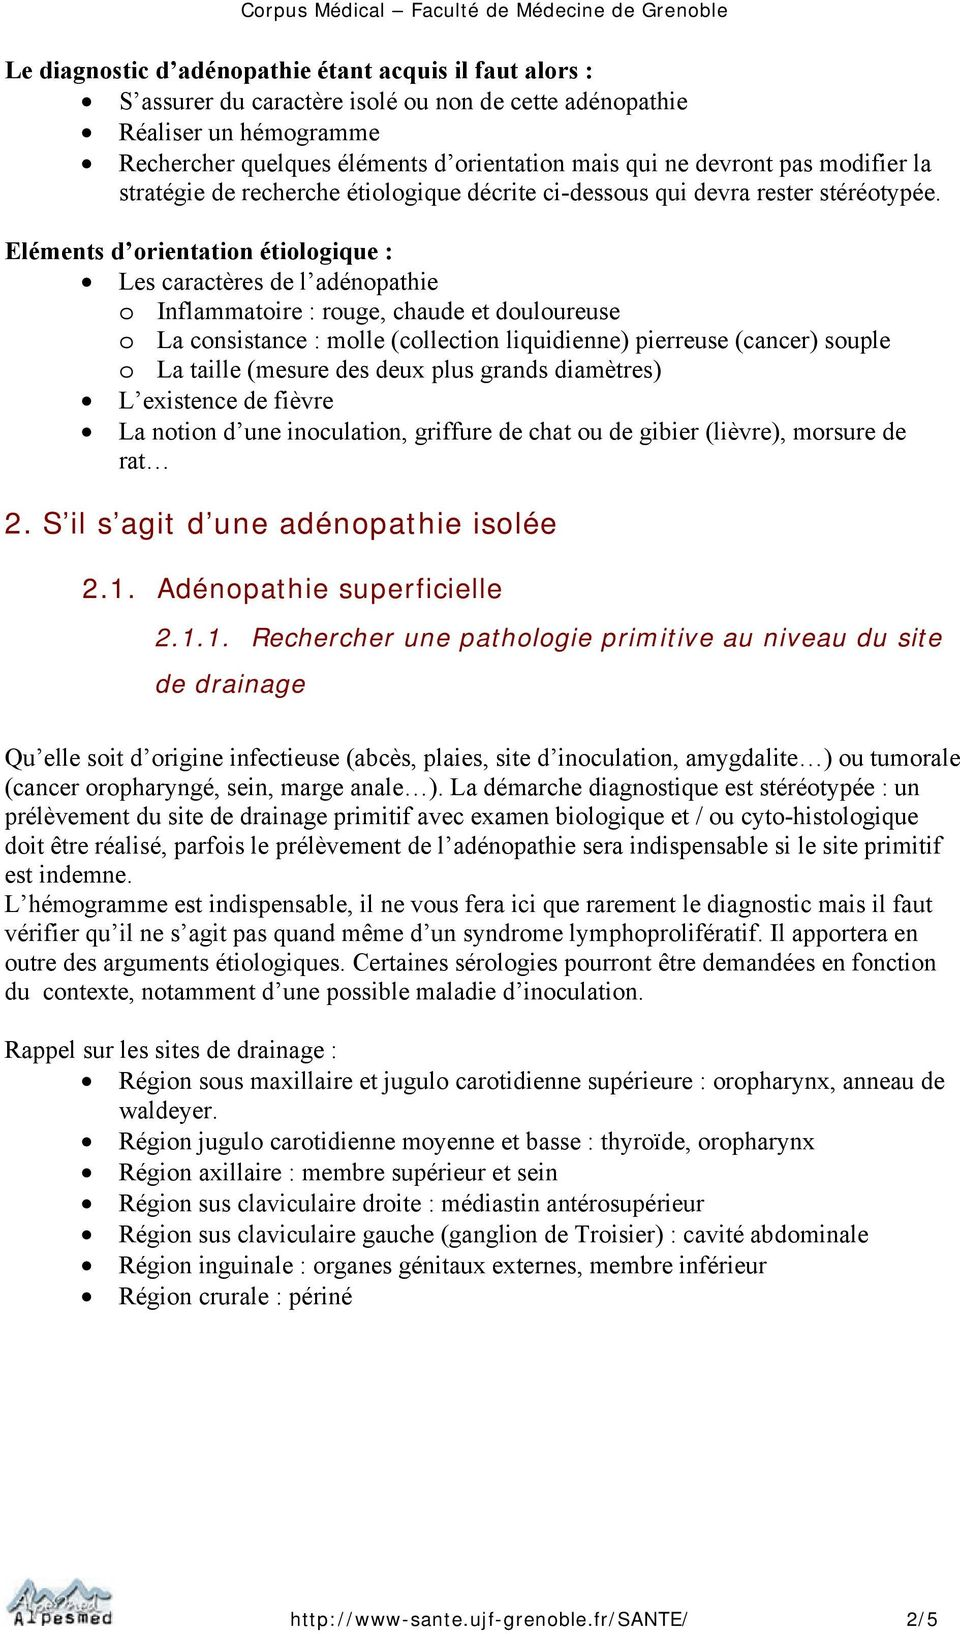 Eléments d orientation étiologique : Les caractères de l adénopathie o Inflammatoire : rouge, chaude et douloureuse o La consistance : molle (collection liquidienne) pierreuse (cancer) souple o La